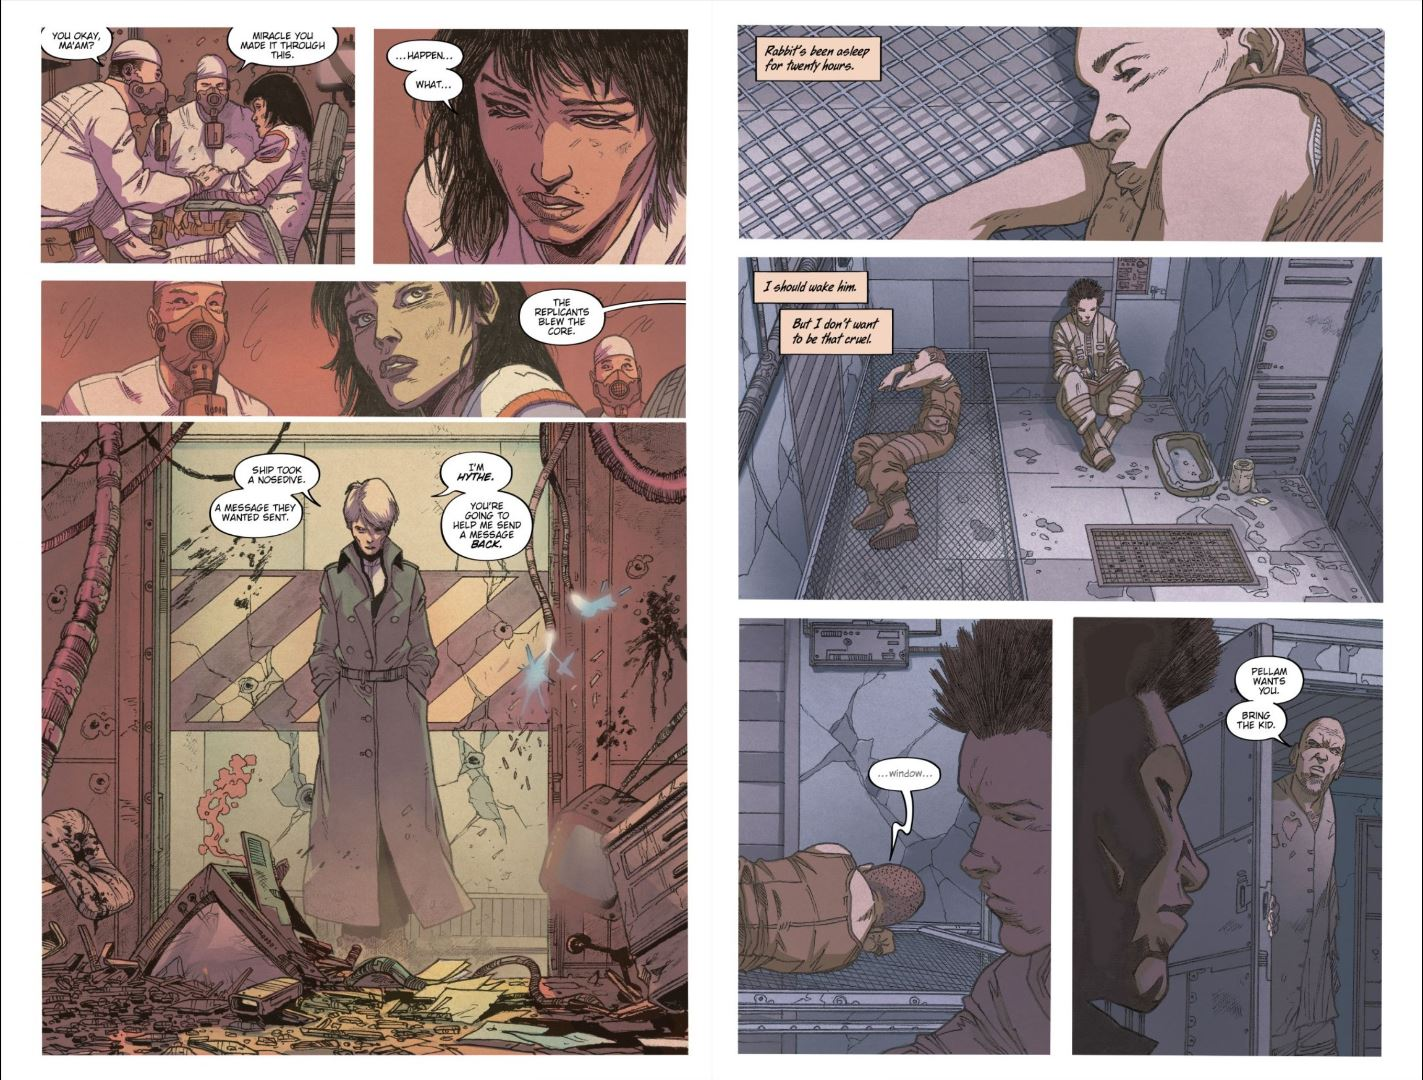 Blade Runner 2019 # 6 Review - Hythe and Cleo